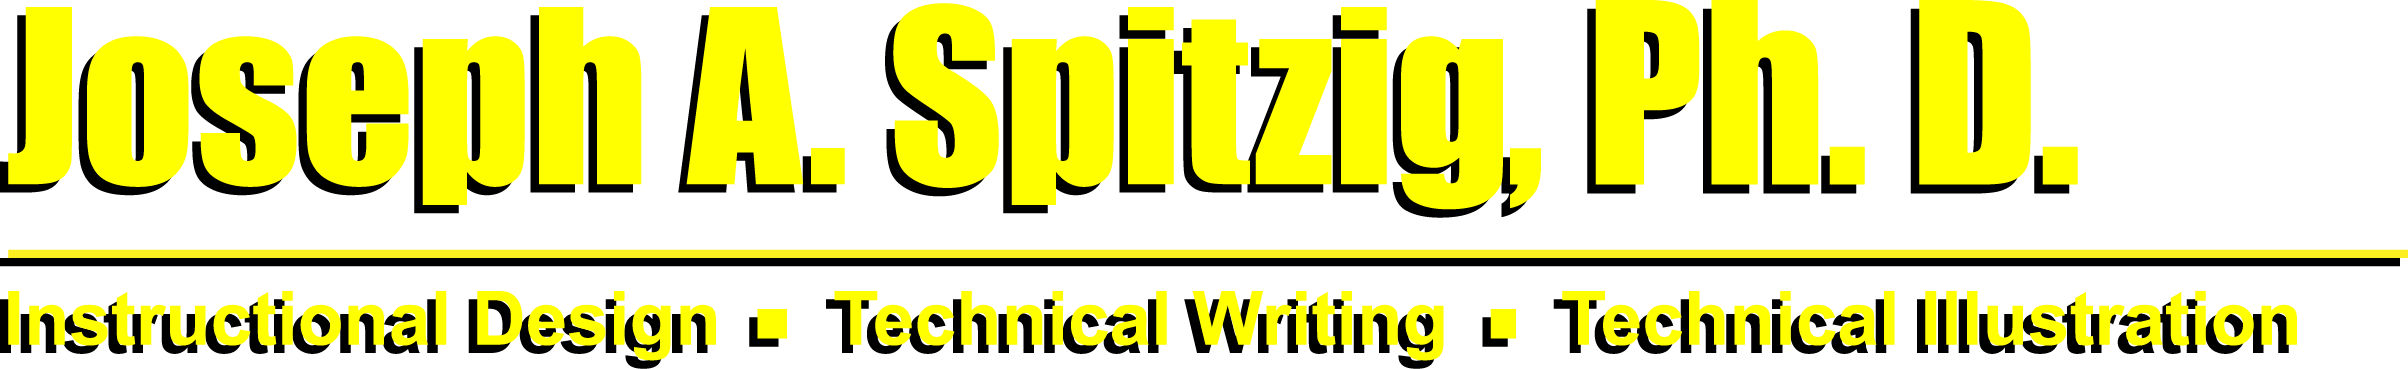 Joseph A. Spitzig - Instructional Design - Technical Writing - Technical Illustration